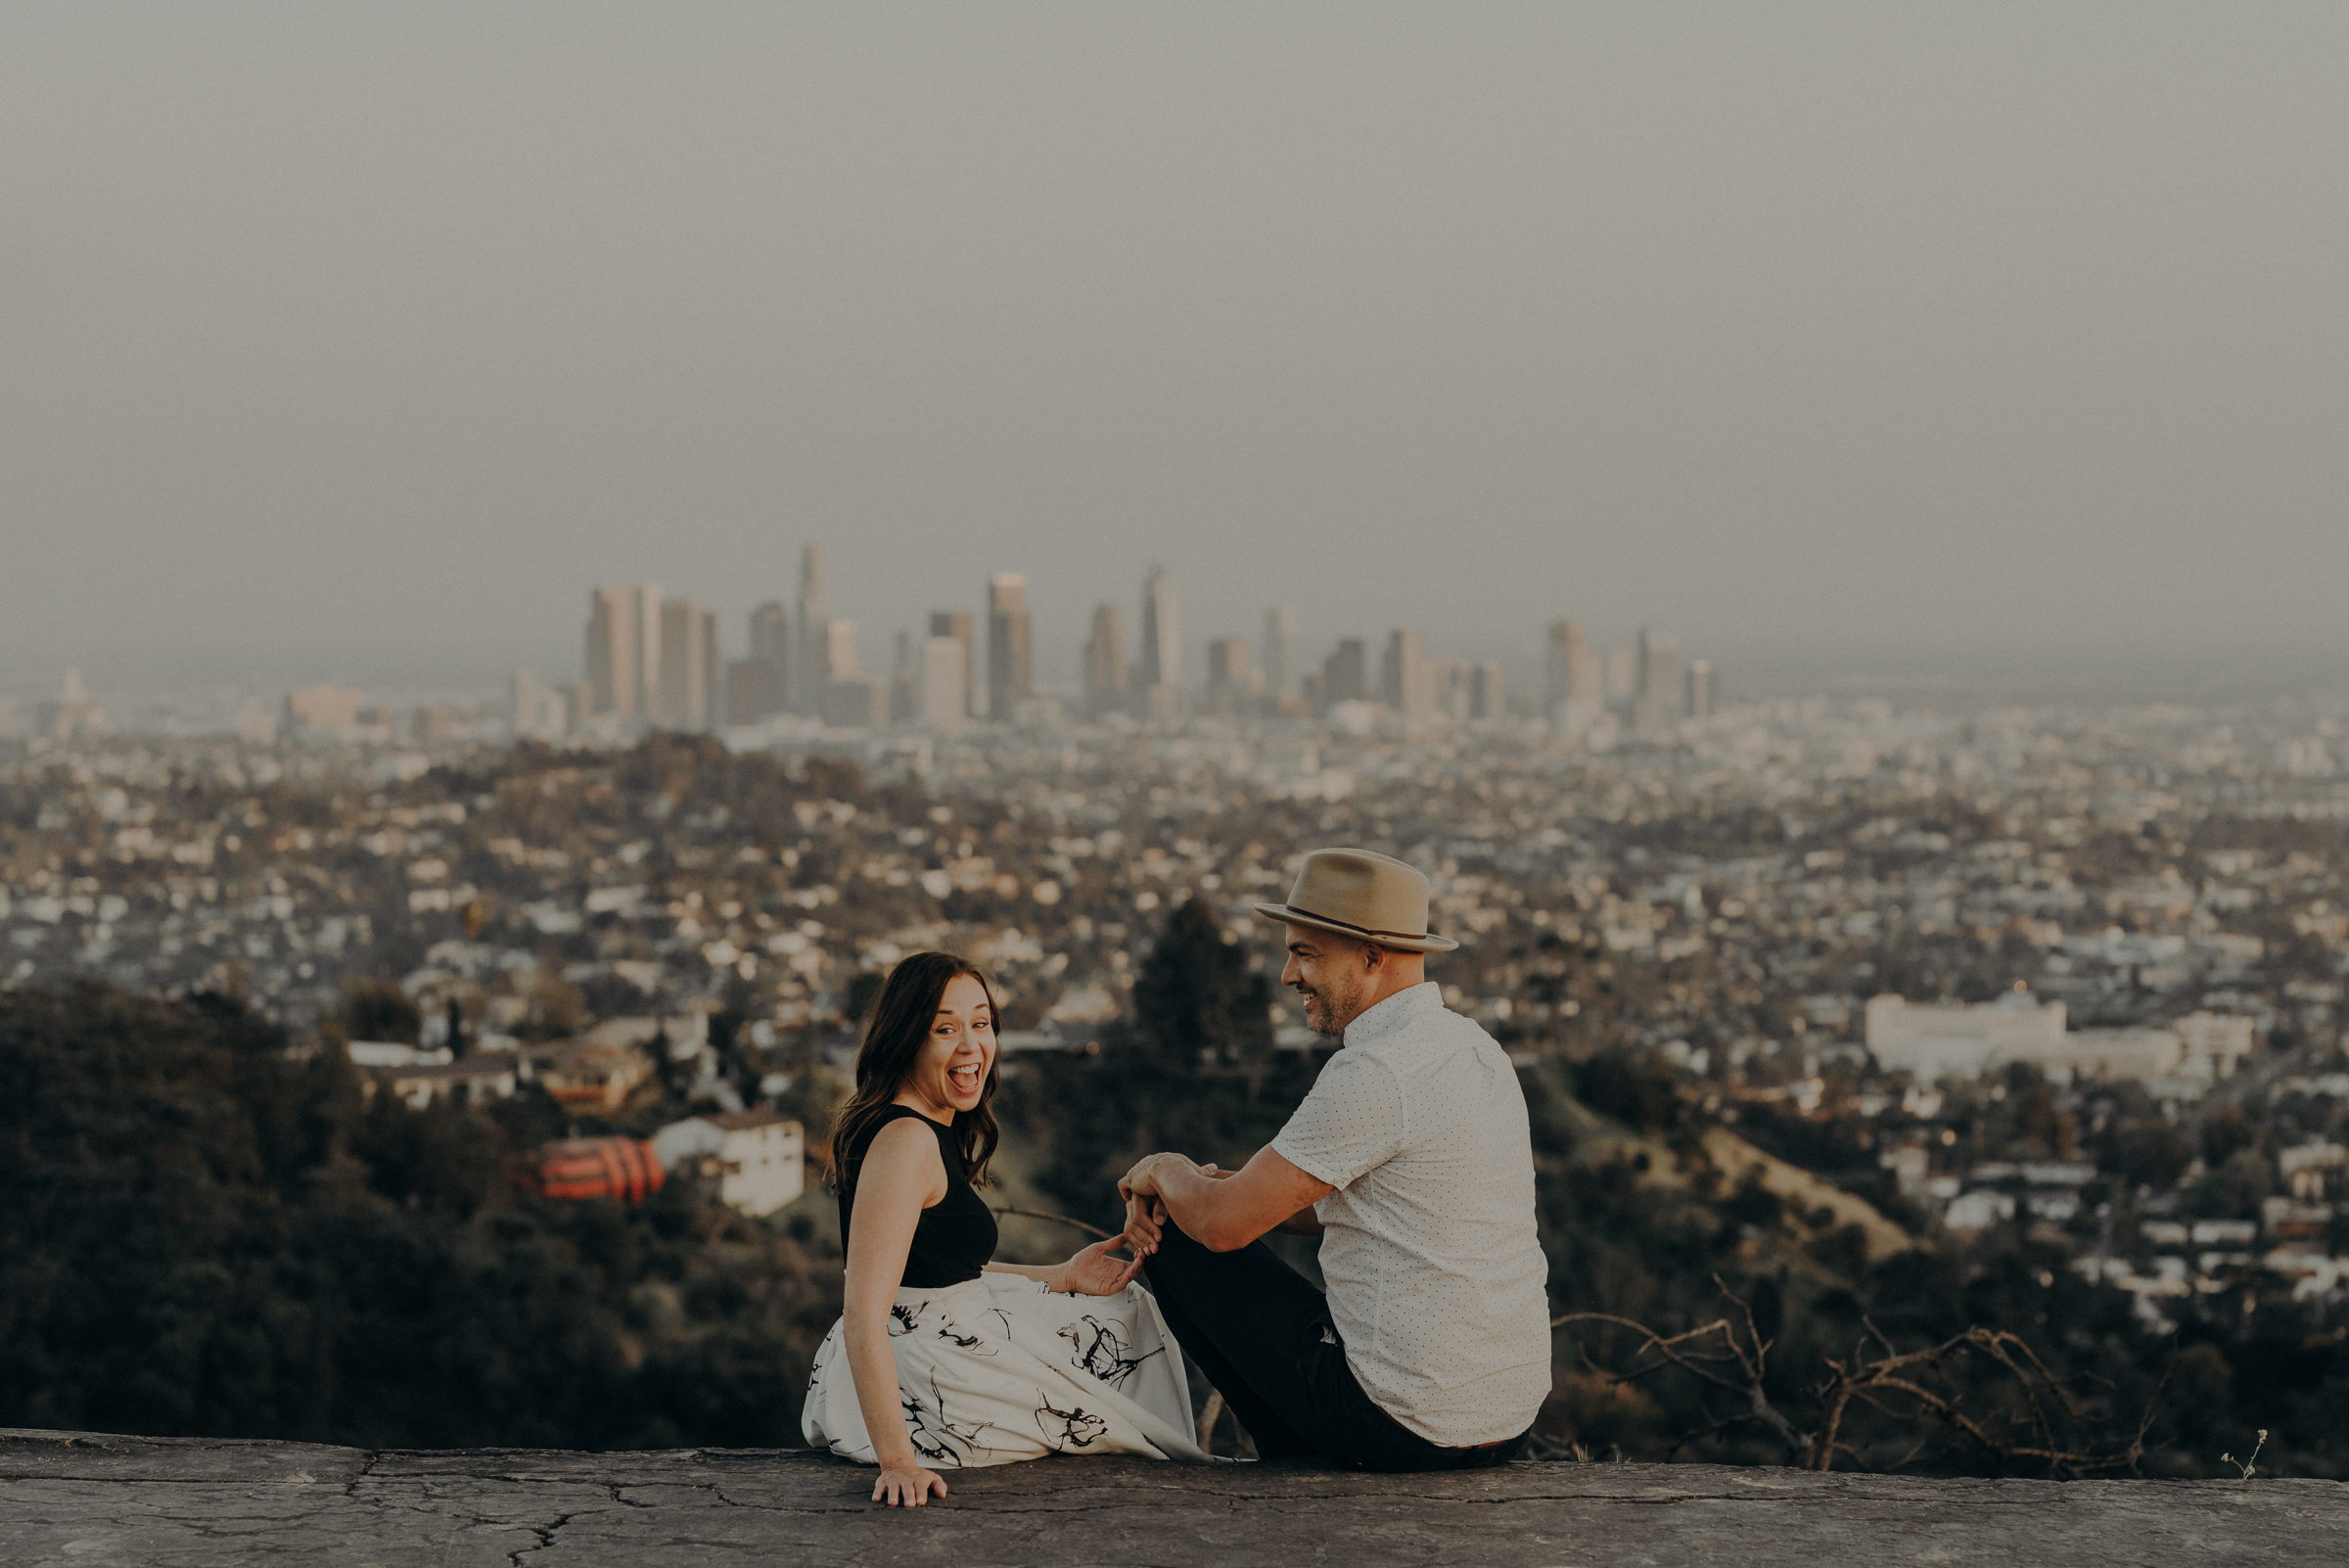 Los Angeles Wedding Photographers - Griffith Park Engagement - IsaiahAndTaylor.com-059.jpg